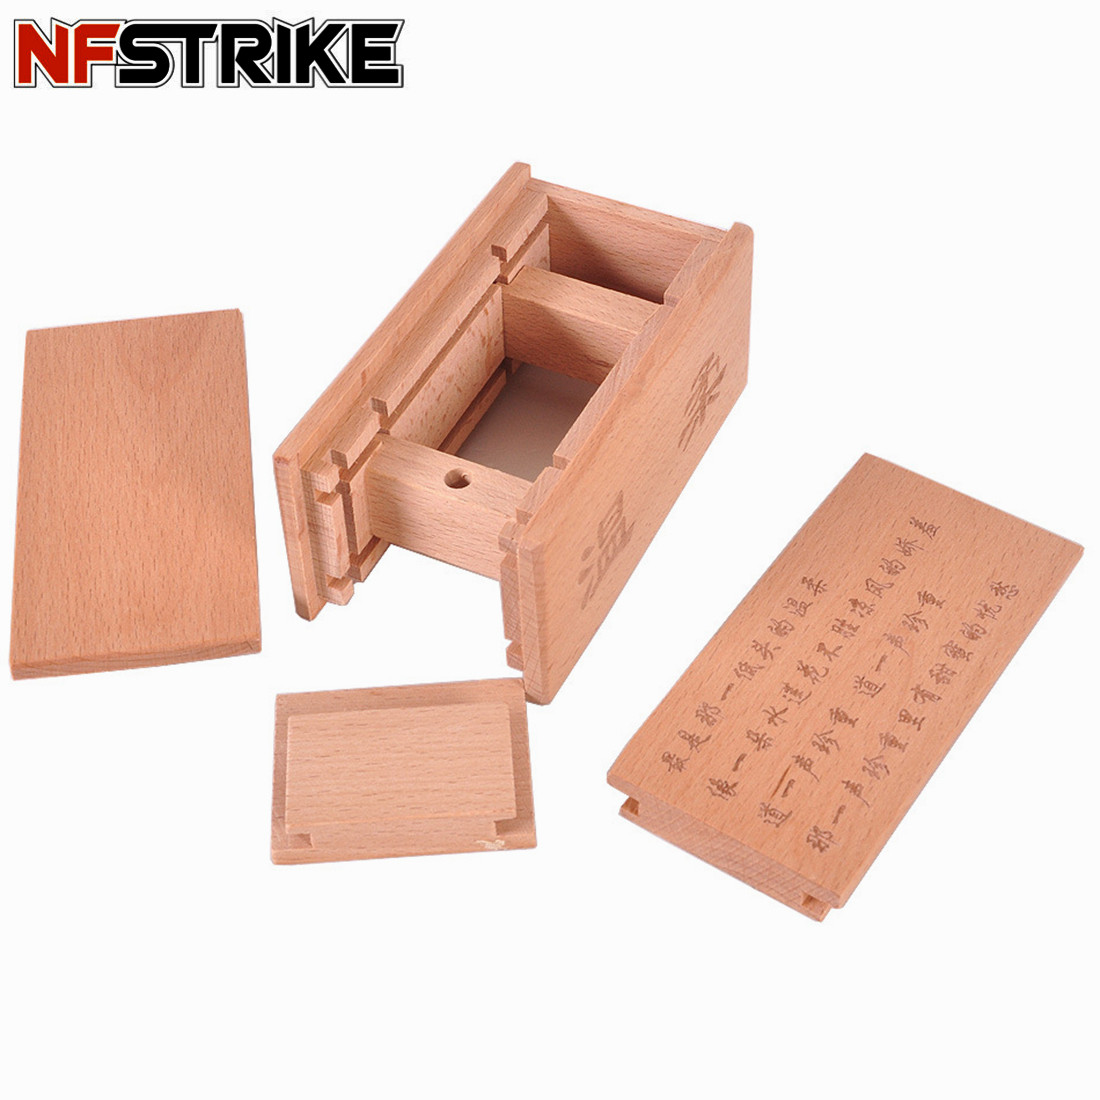 NFSTRIKE Lock Moonlight Mystery Treasure Magic Box Wooden Intelligent Puzzles Toys For Kids Children Early Development Toys 2018